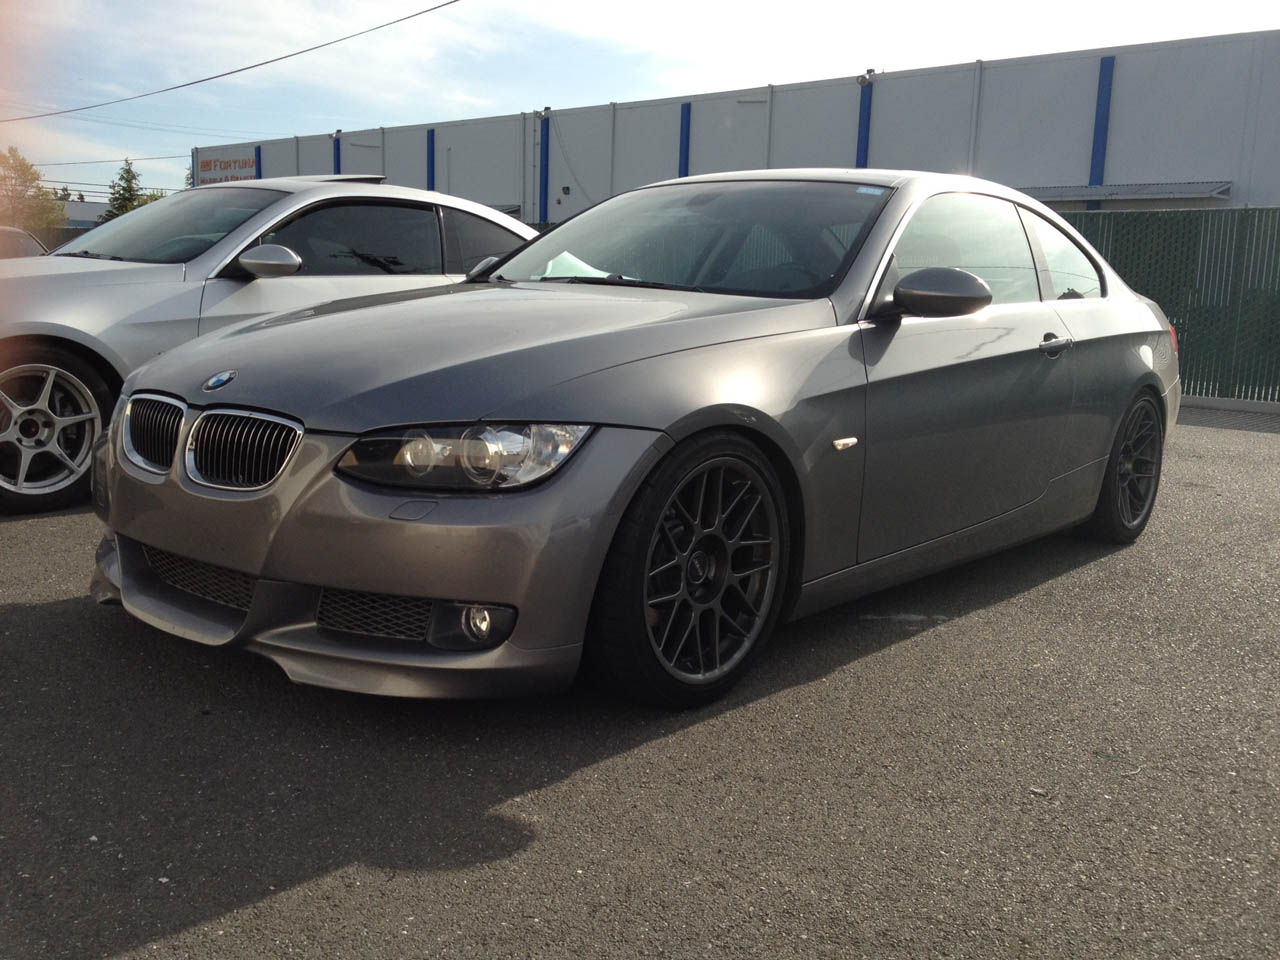 2007 Space Grey BMW 335i Coupe VISHNU Procede picture, mods, upgrades